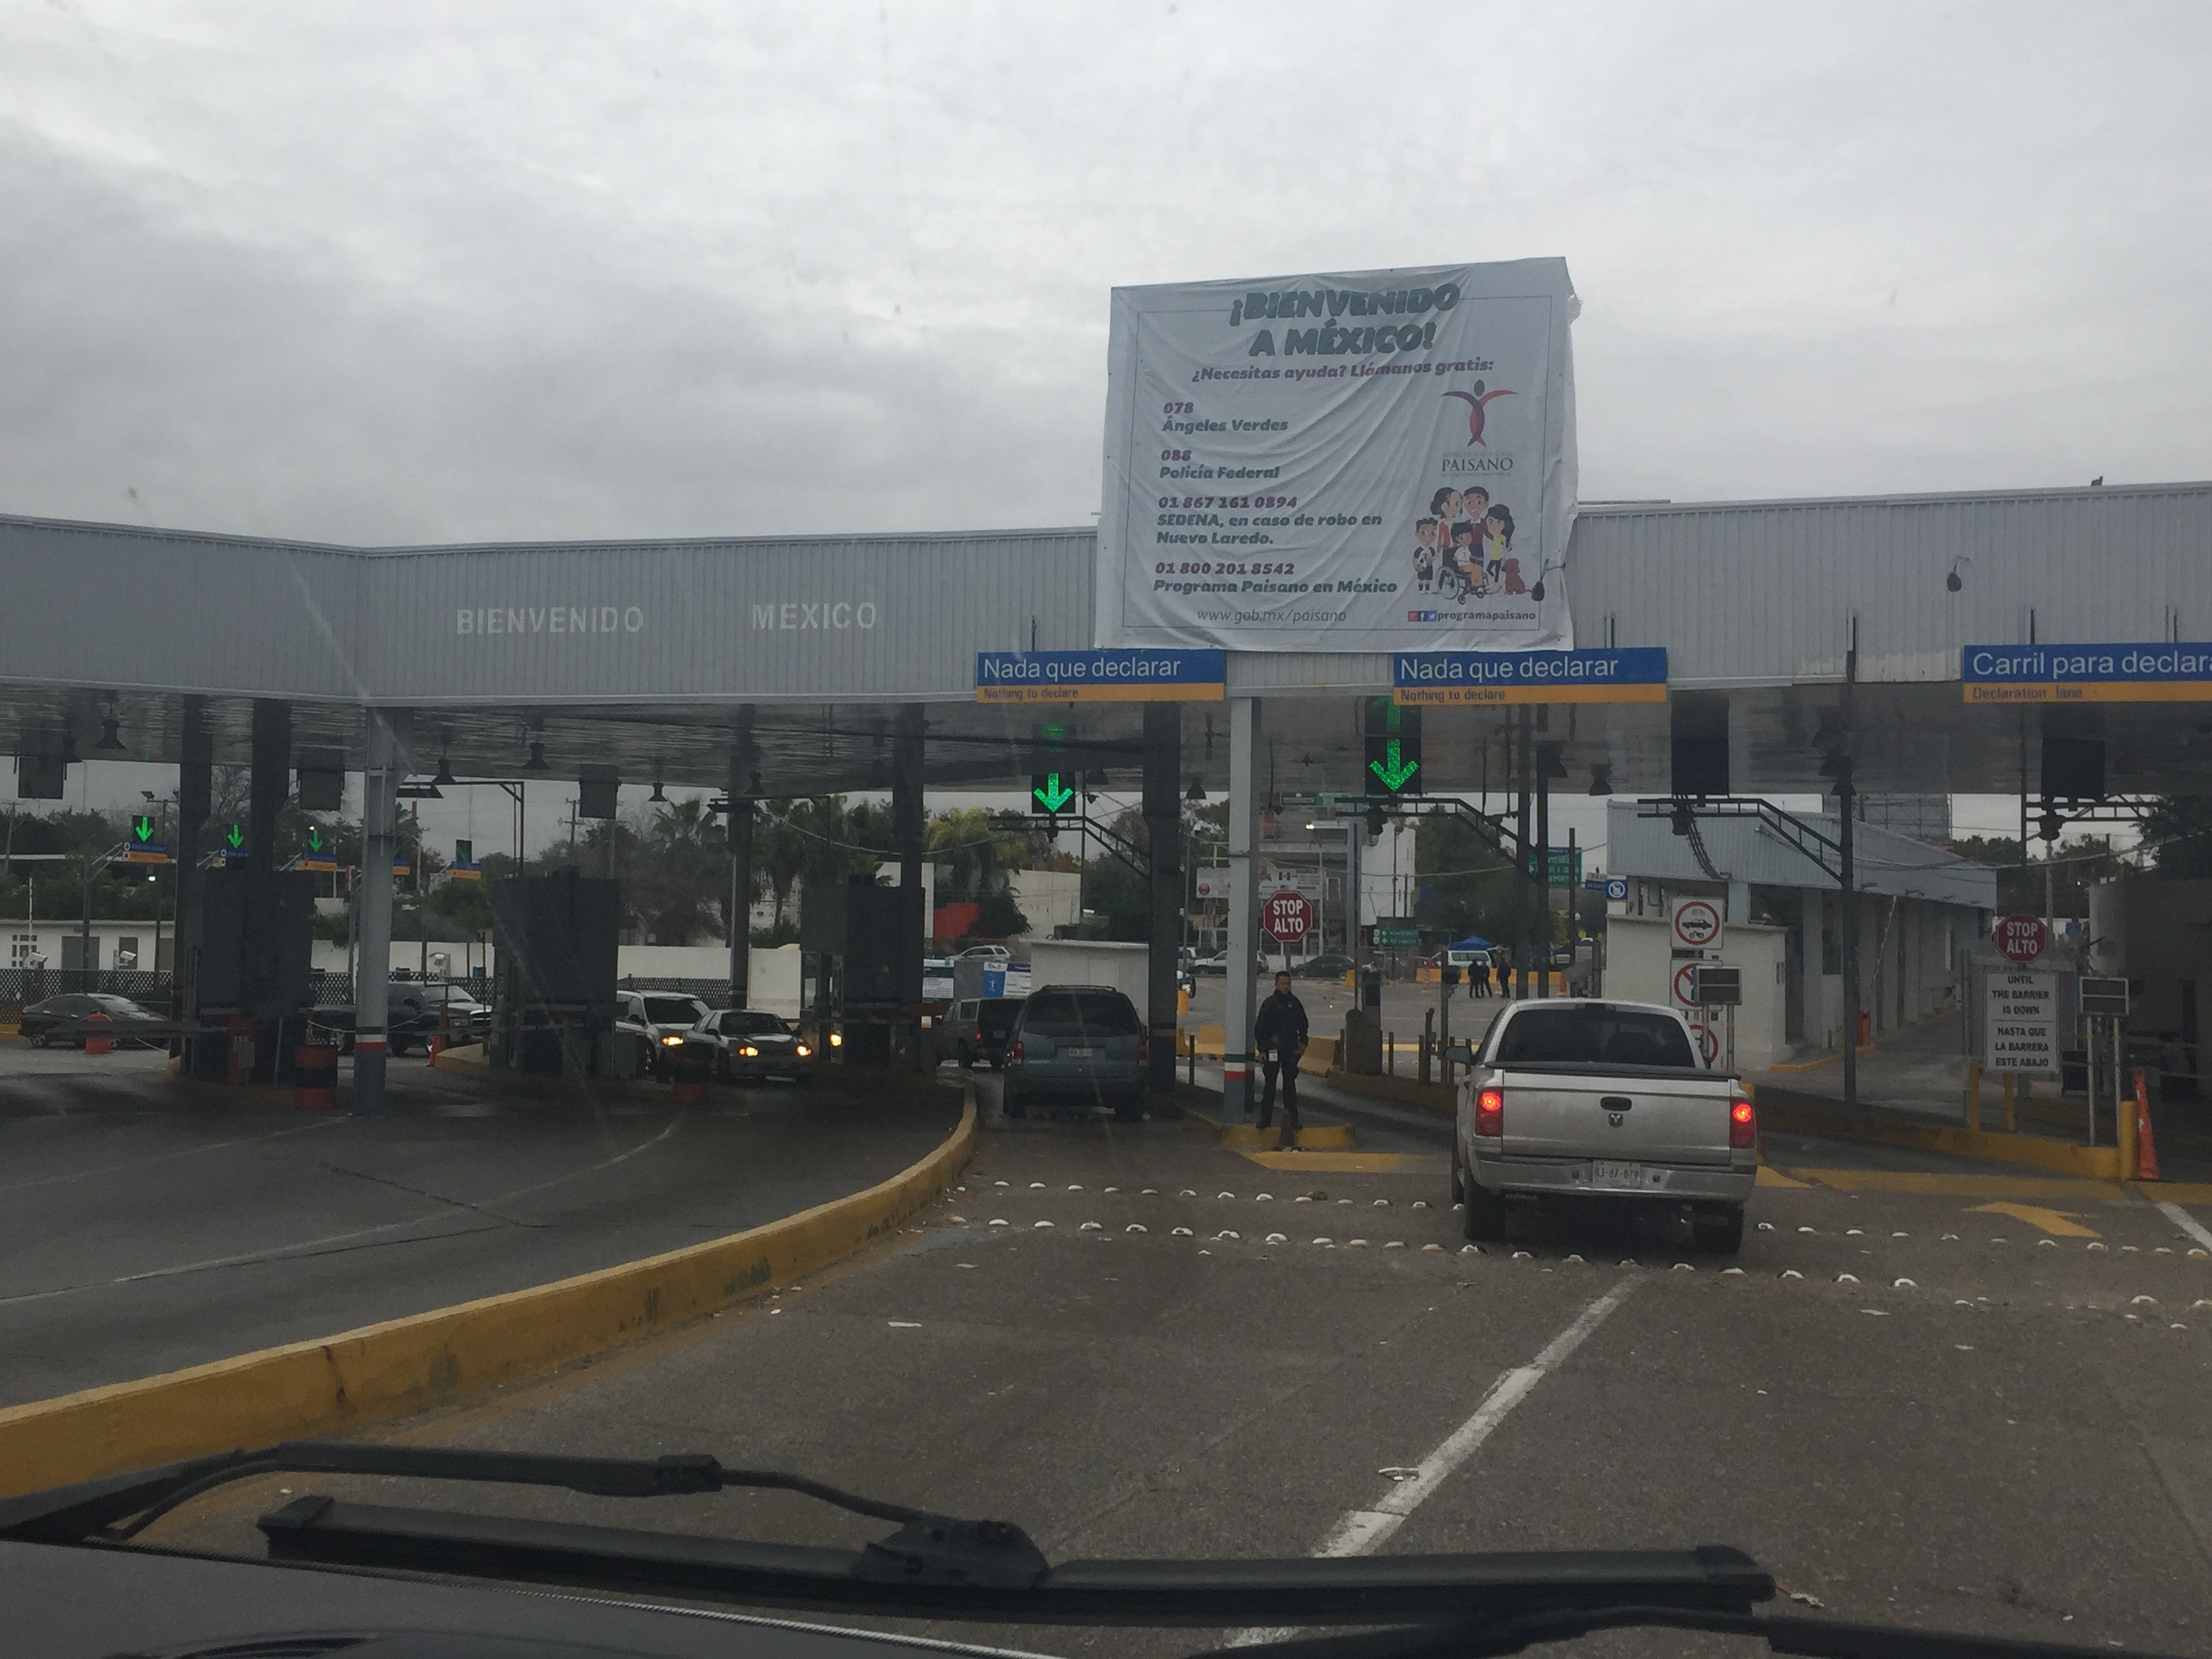 Mexico Border Crossing, all that anxiety just for a good